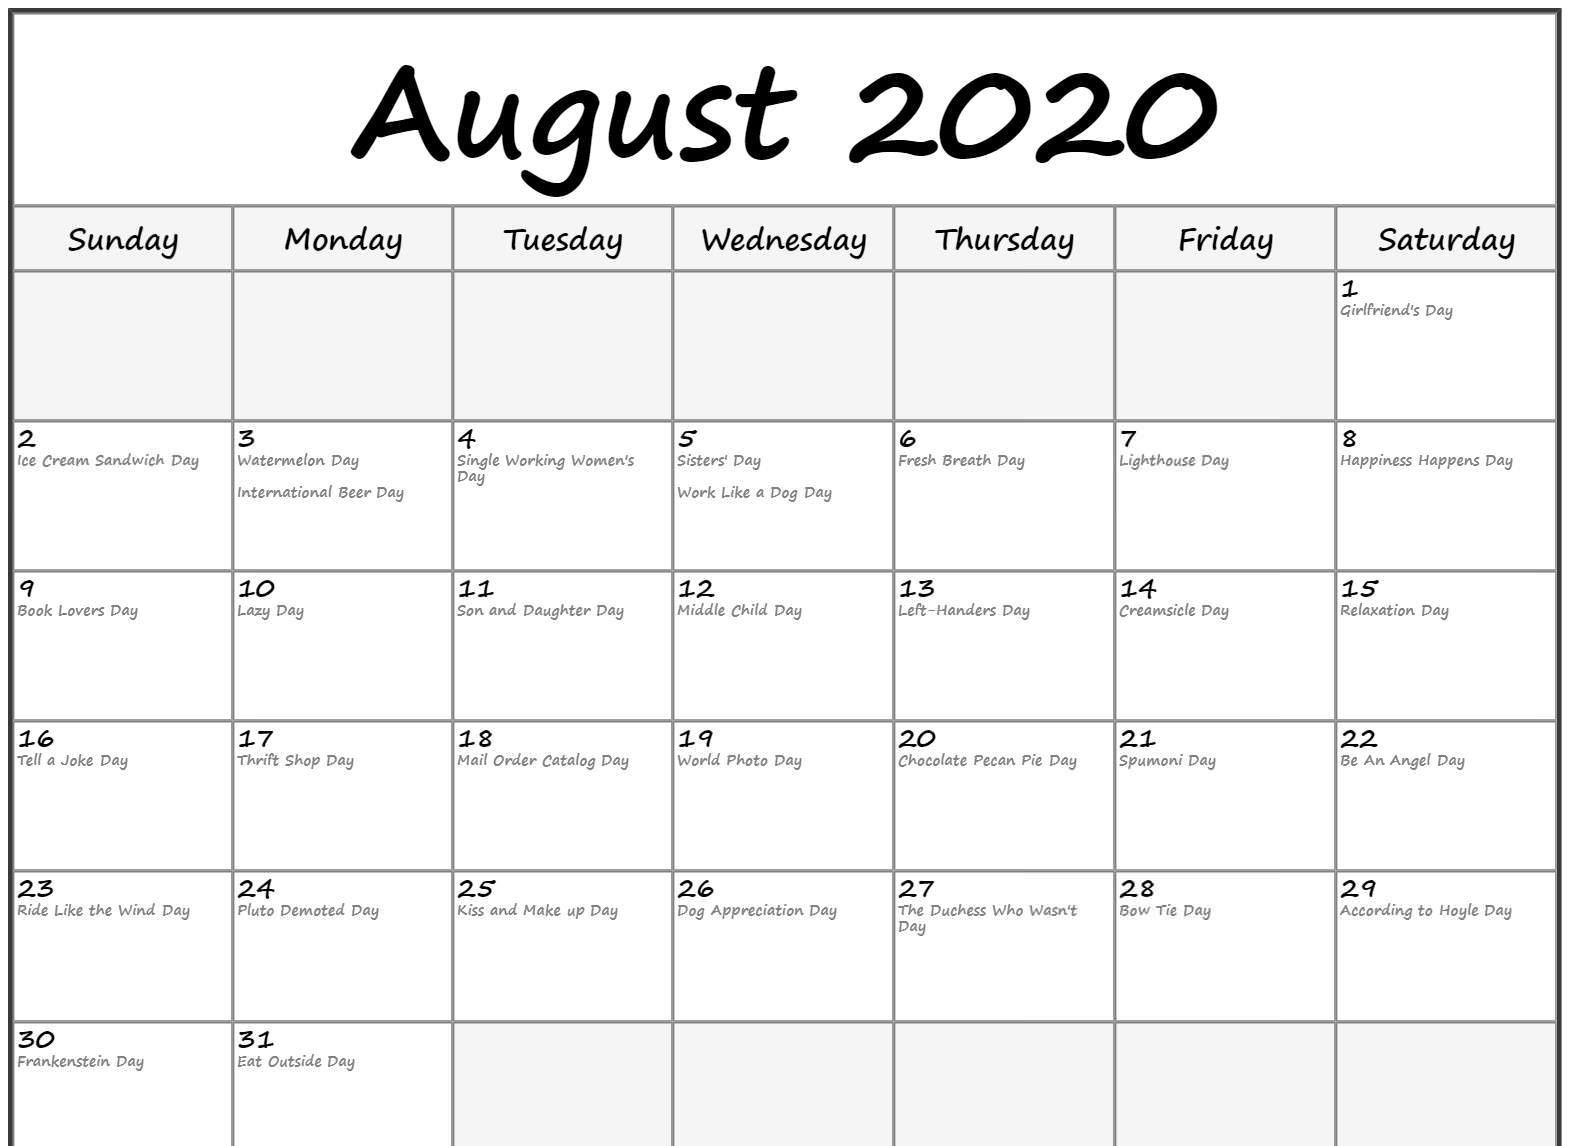 Free Printable August Holidays 2020 Calendar US UK Canada